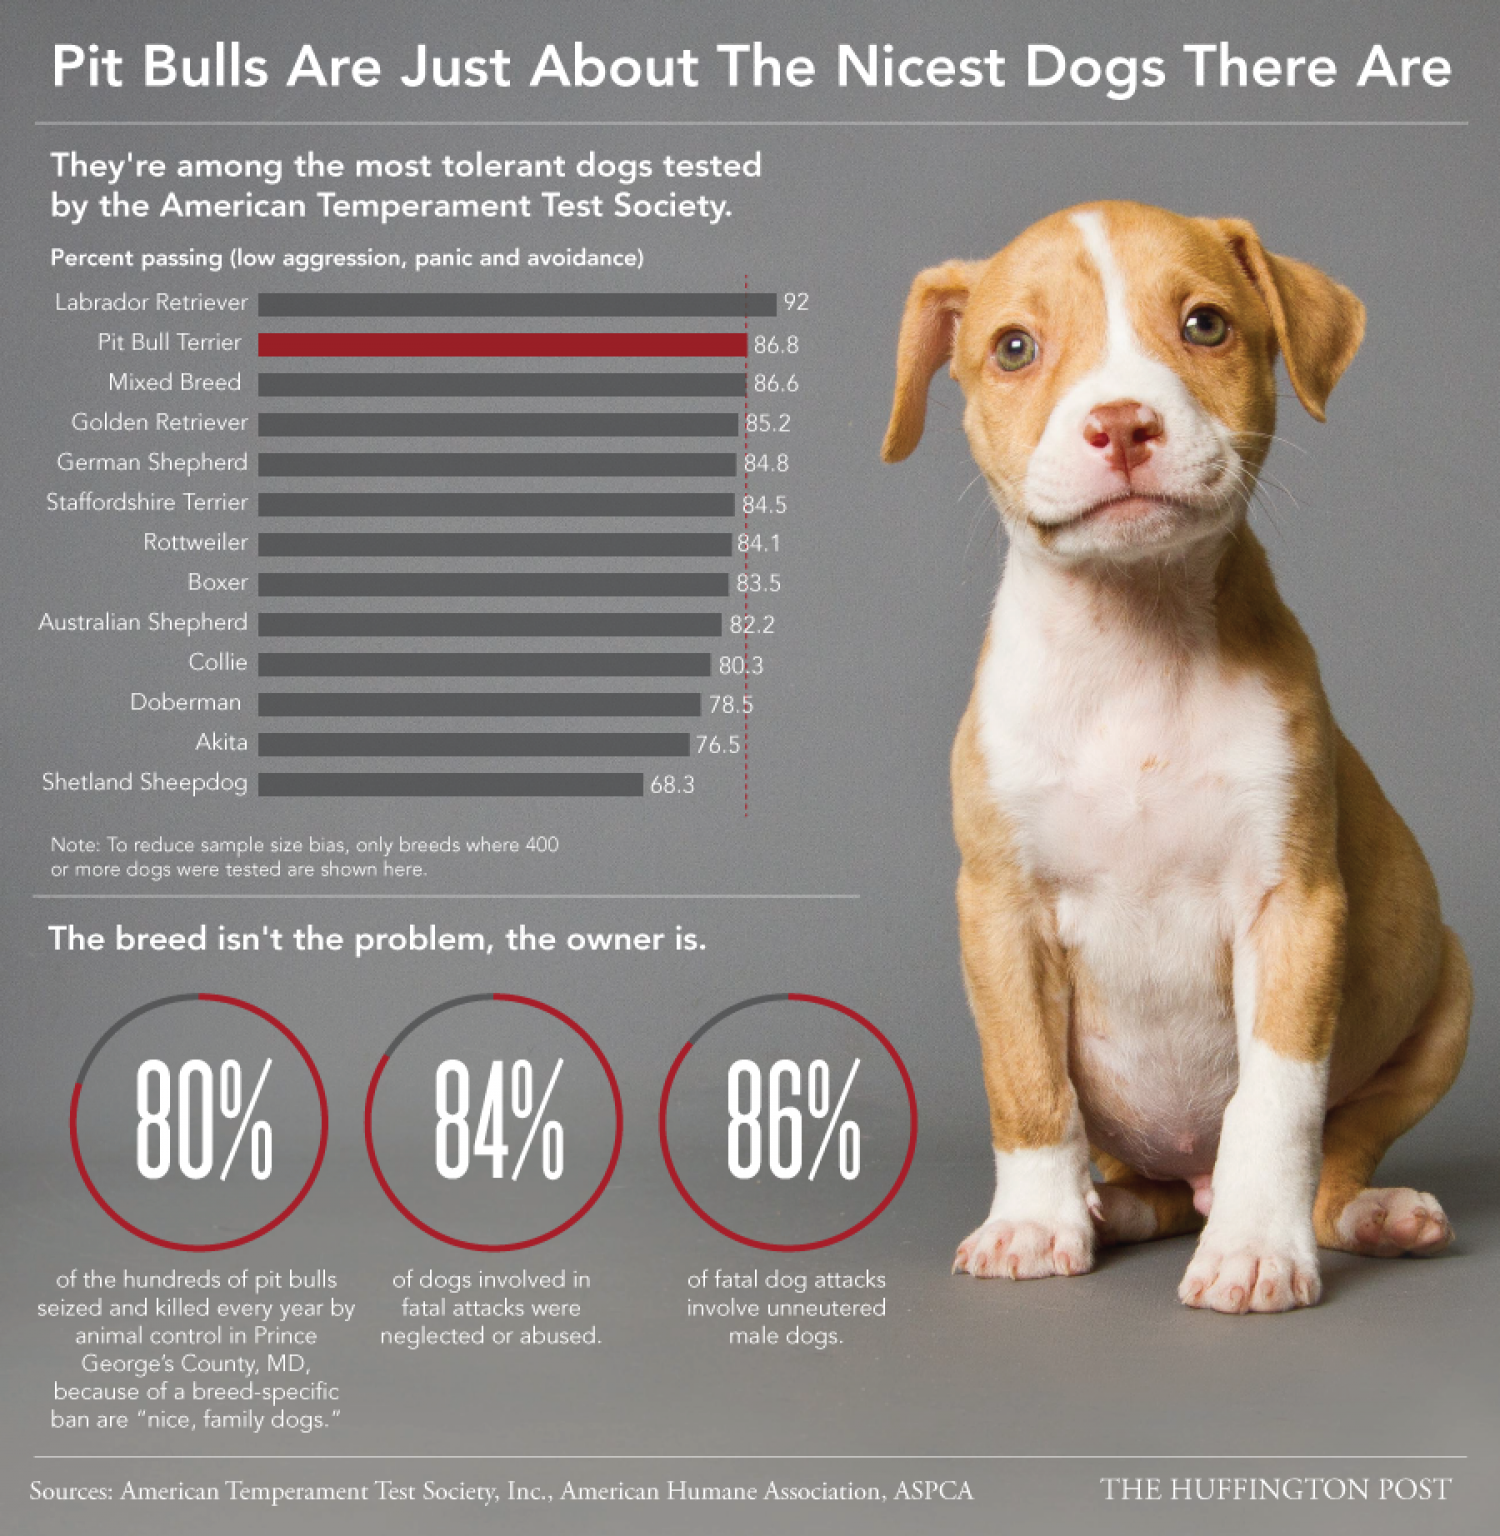 Pit Bulls Are Just About The Nicest Dogs There Are Infographic